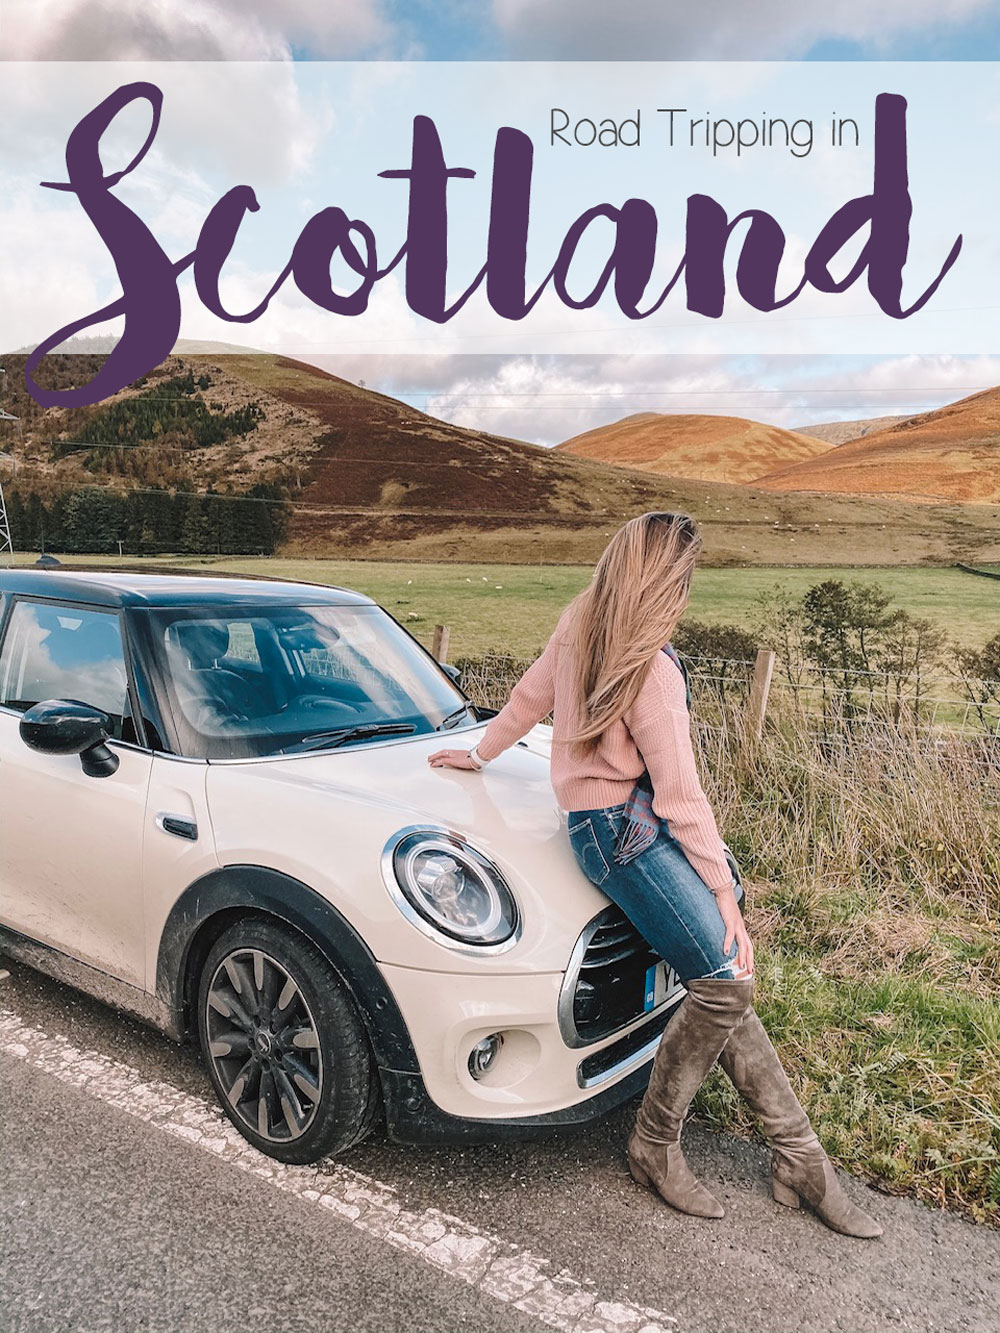 Travel blogger Amanda Martin shares her experience road tripping in Scotland